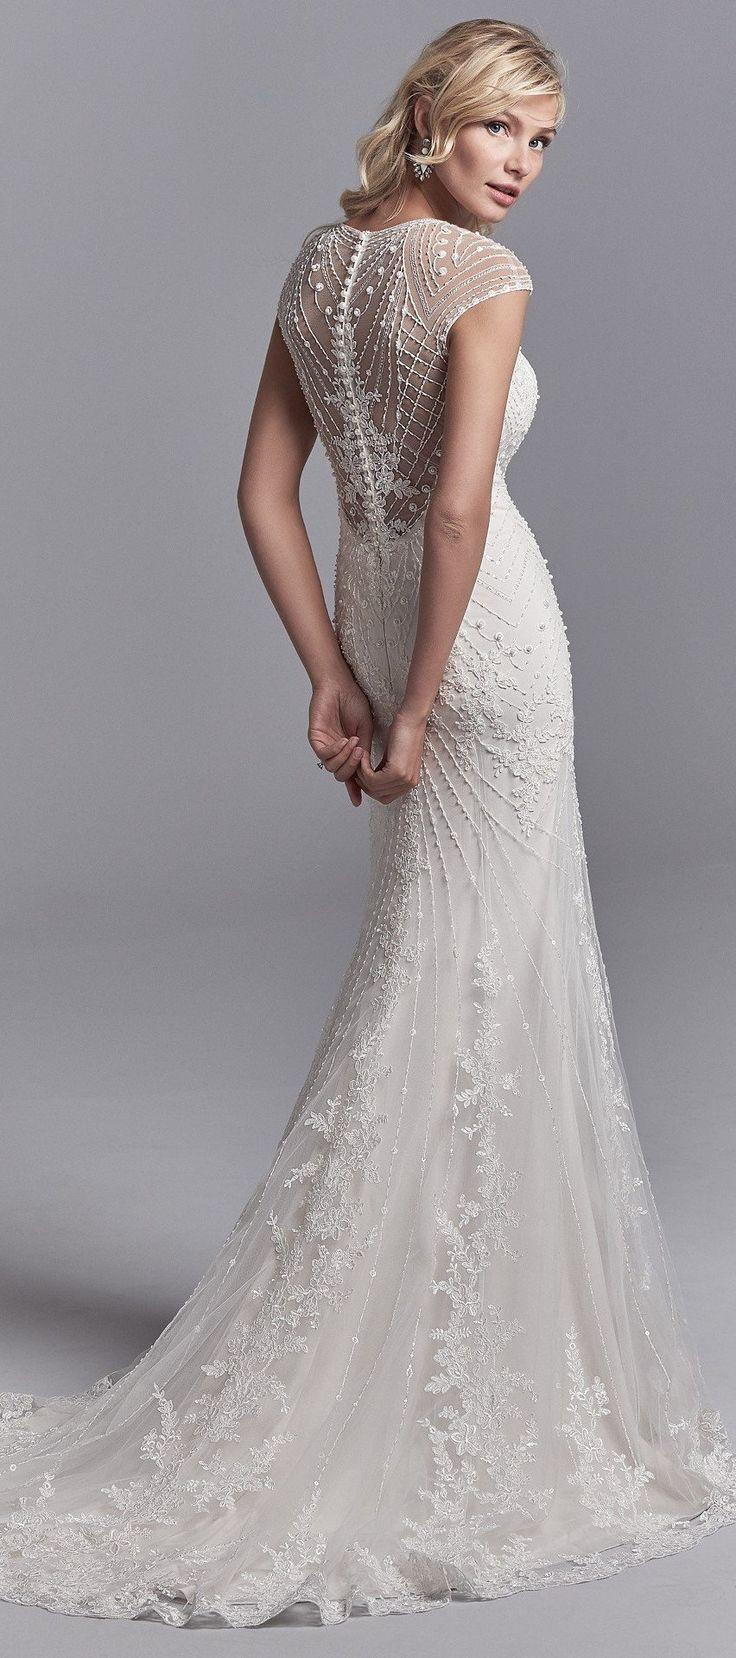 Boda - Maggie Sottero Wedding Dresses